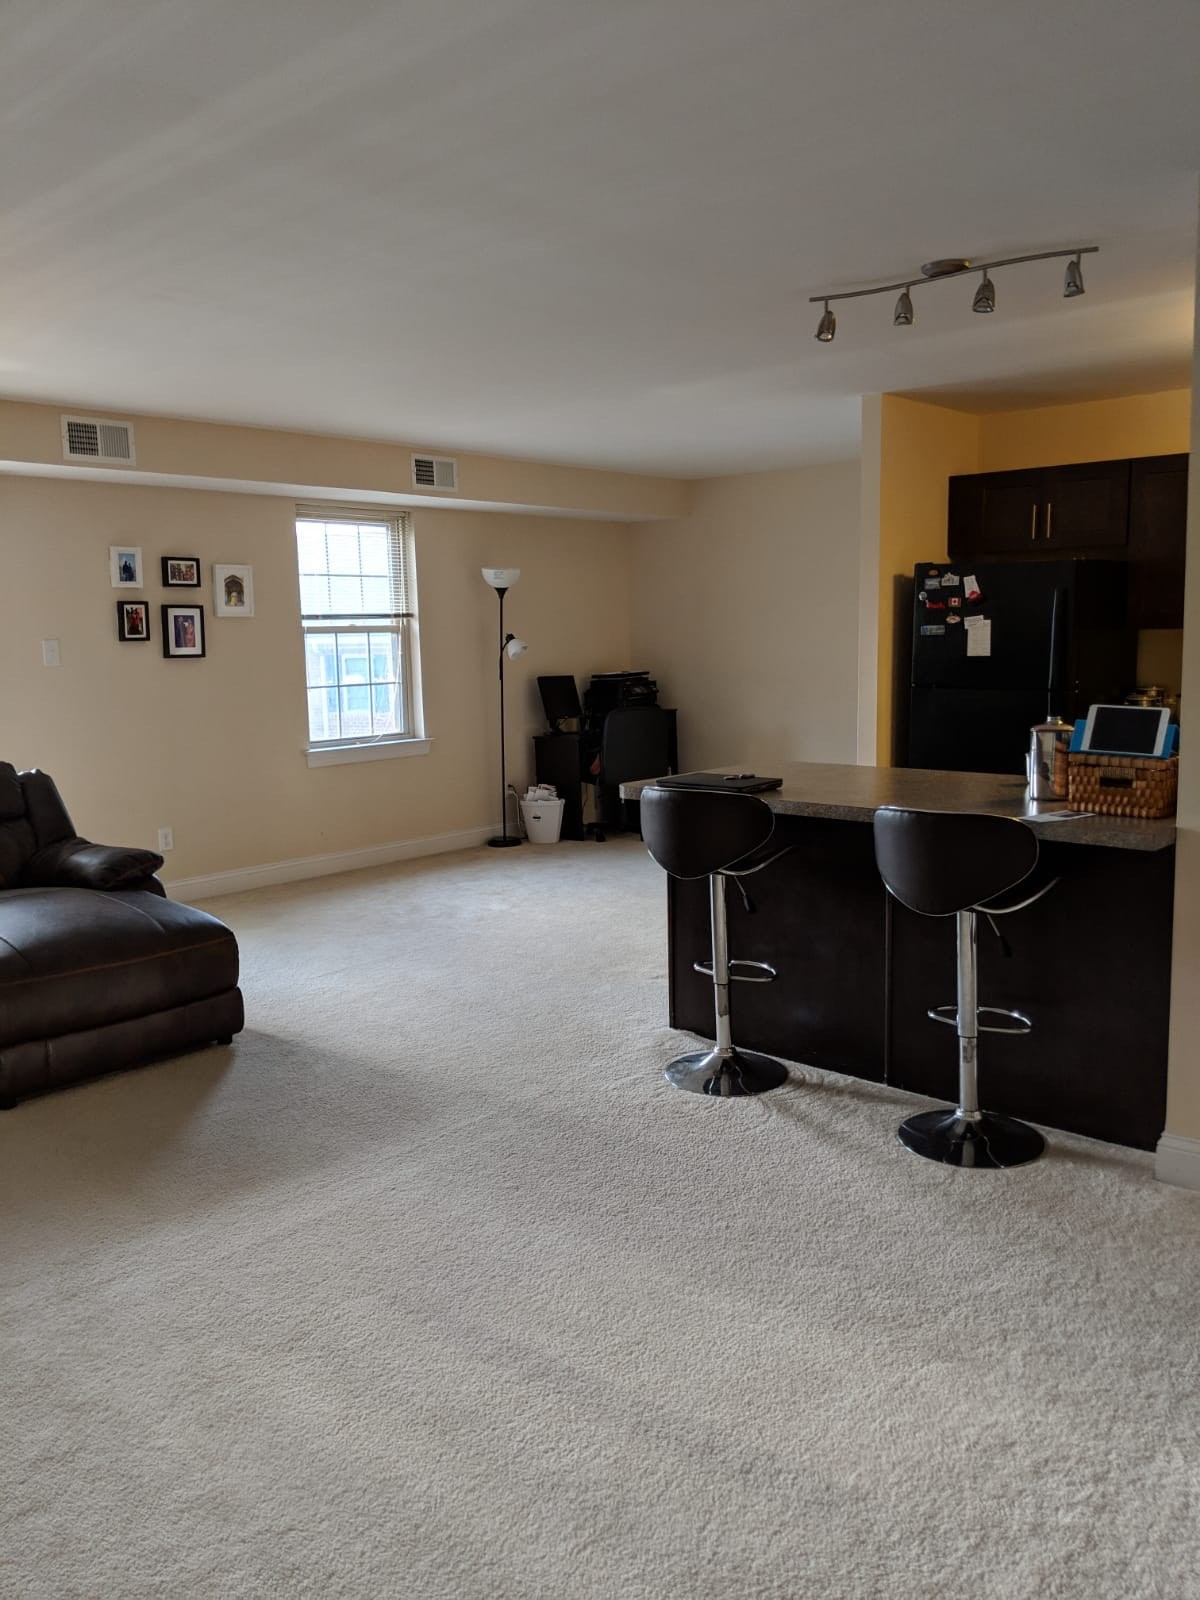 Rooms For Rent In Philadelphia Apartments Flats Commercial Space